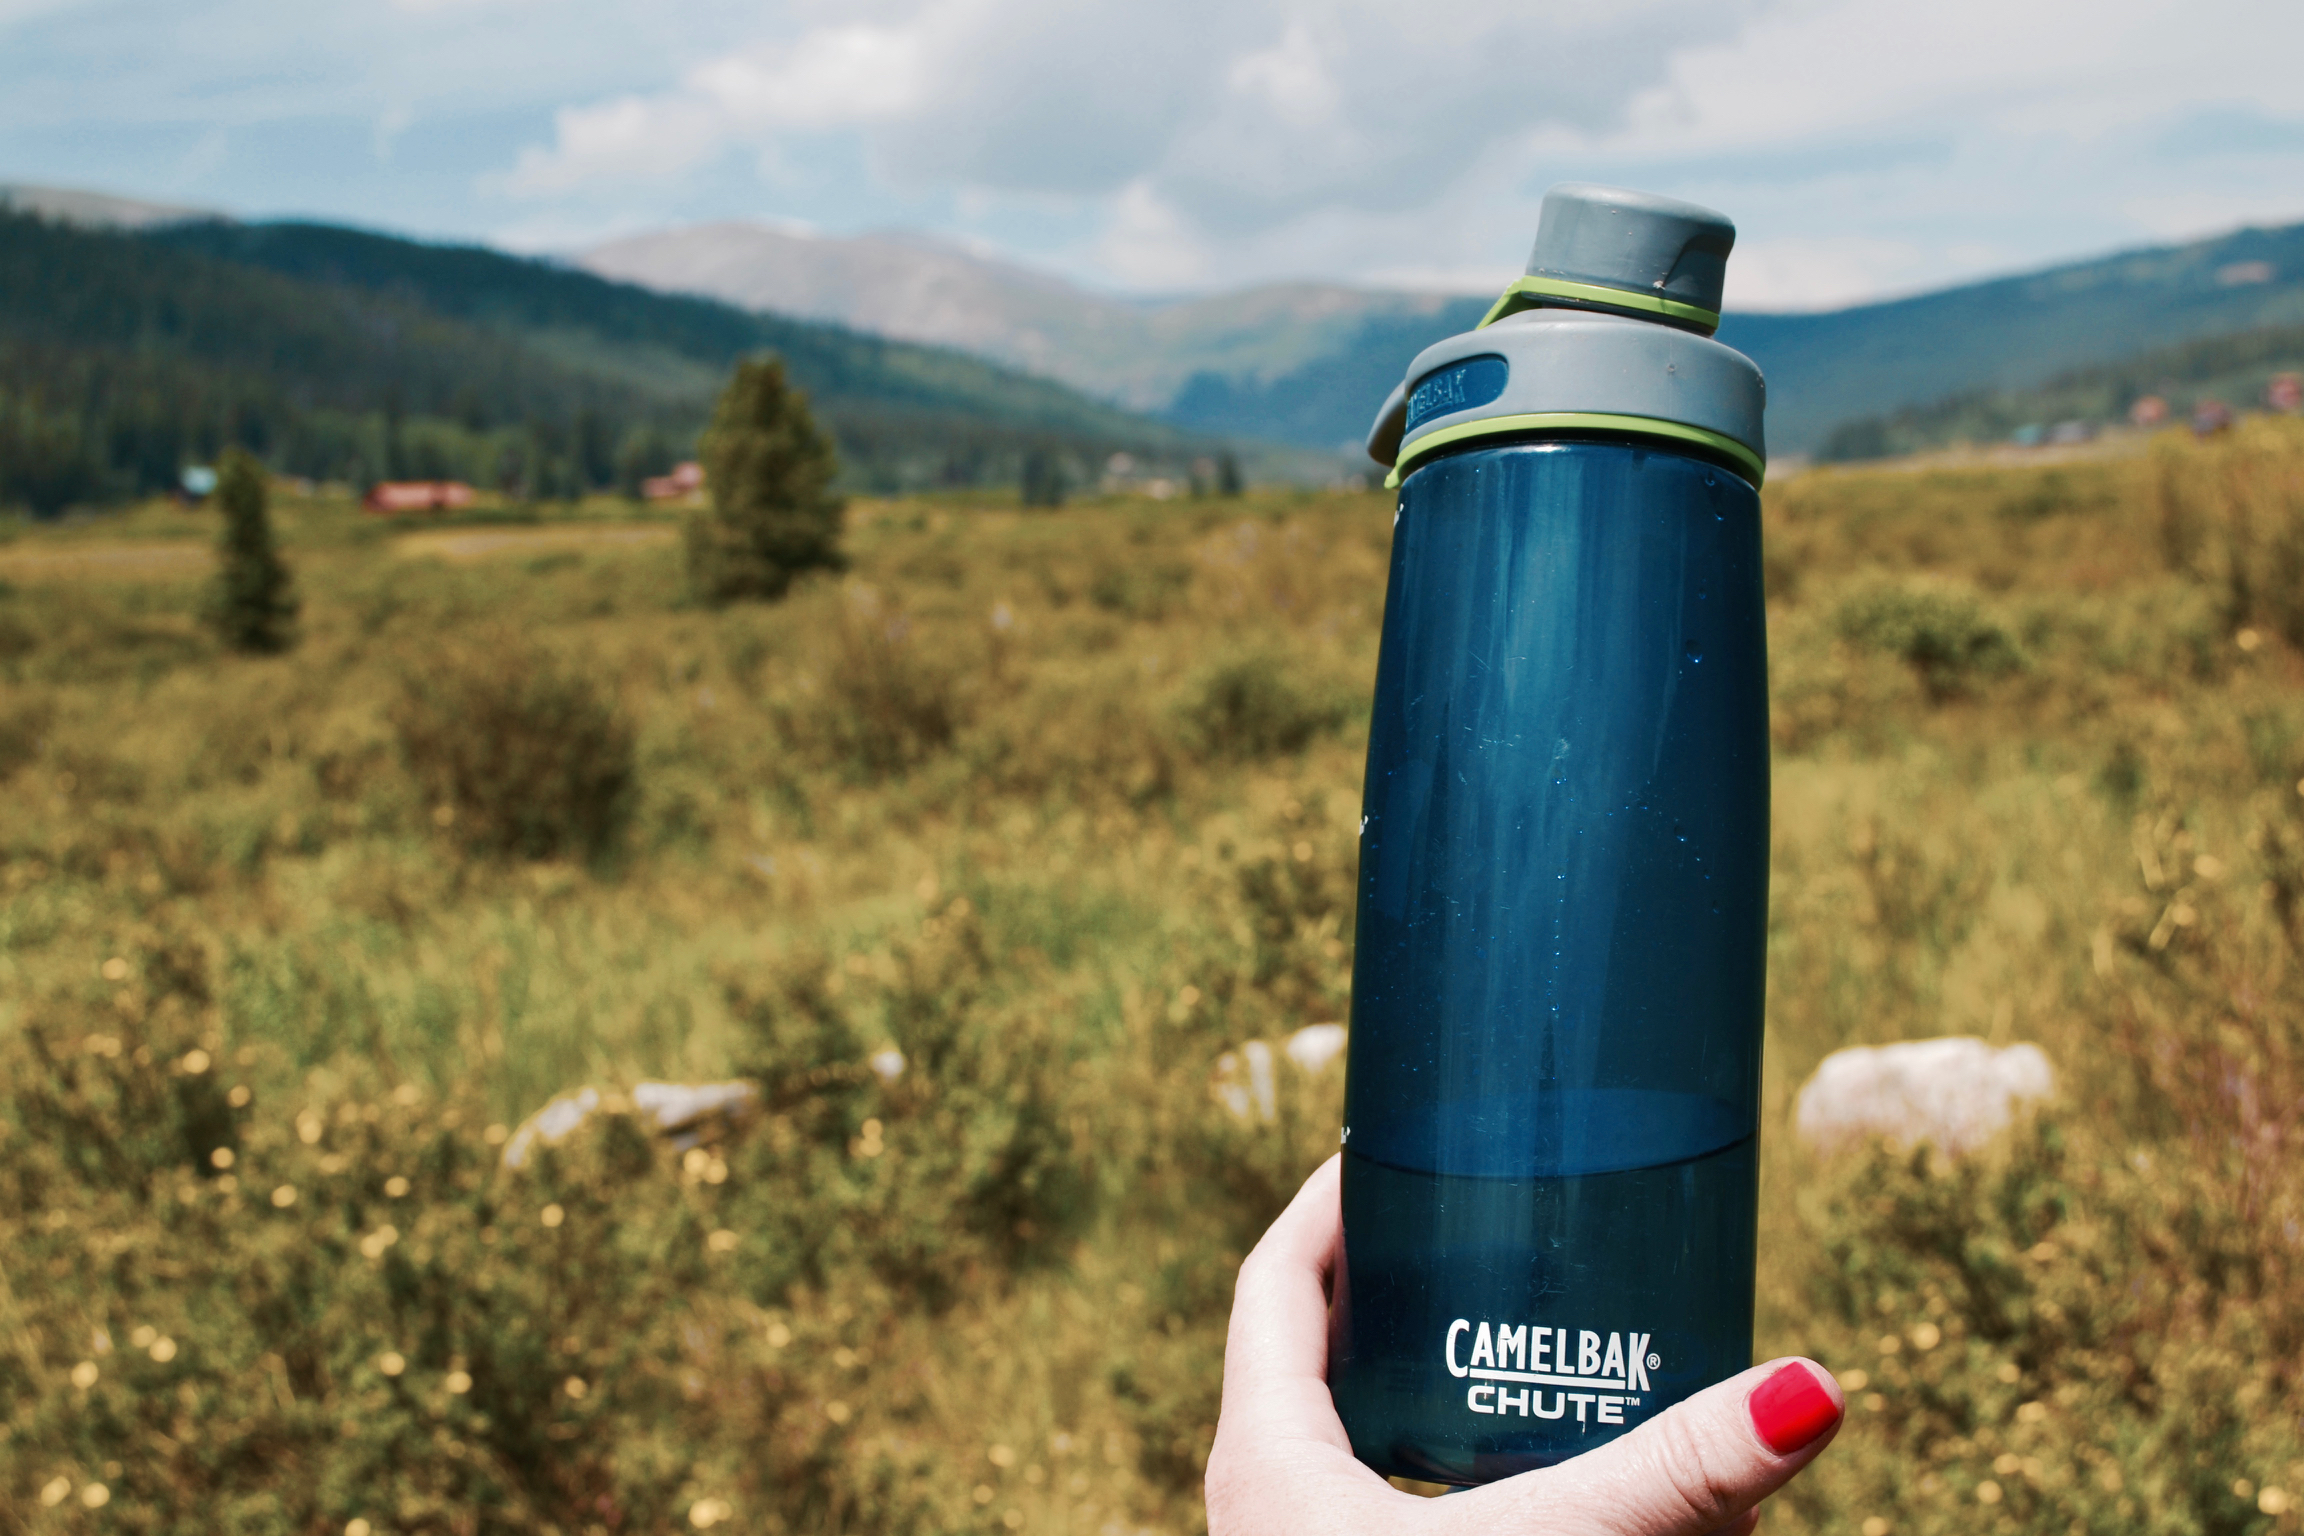 A Camelbak Chute water bottle held up in front of a beautiful mountain scene.